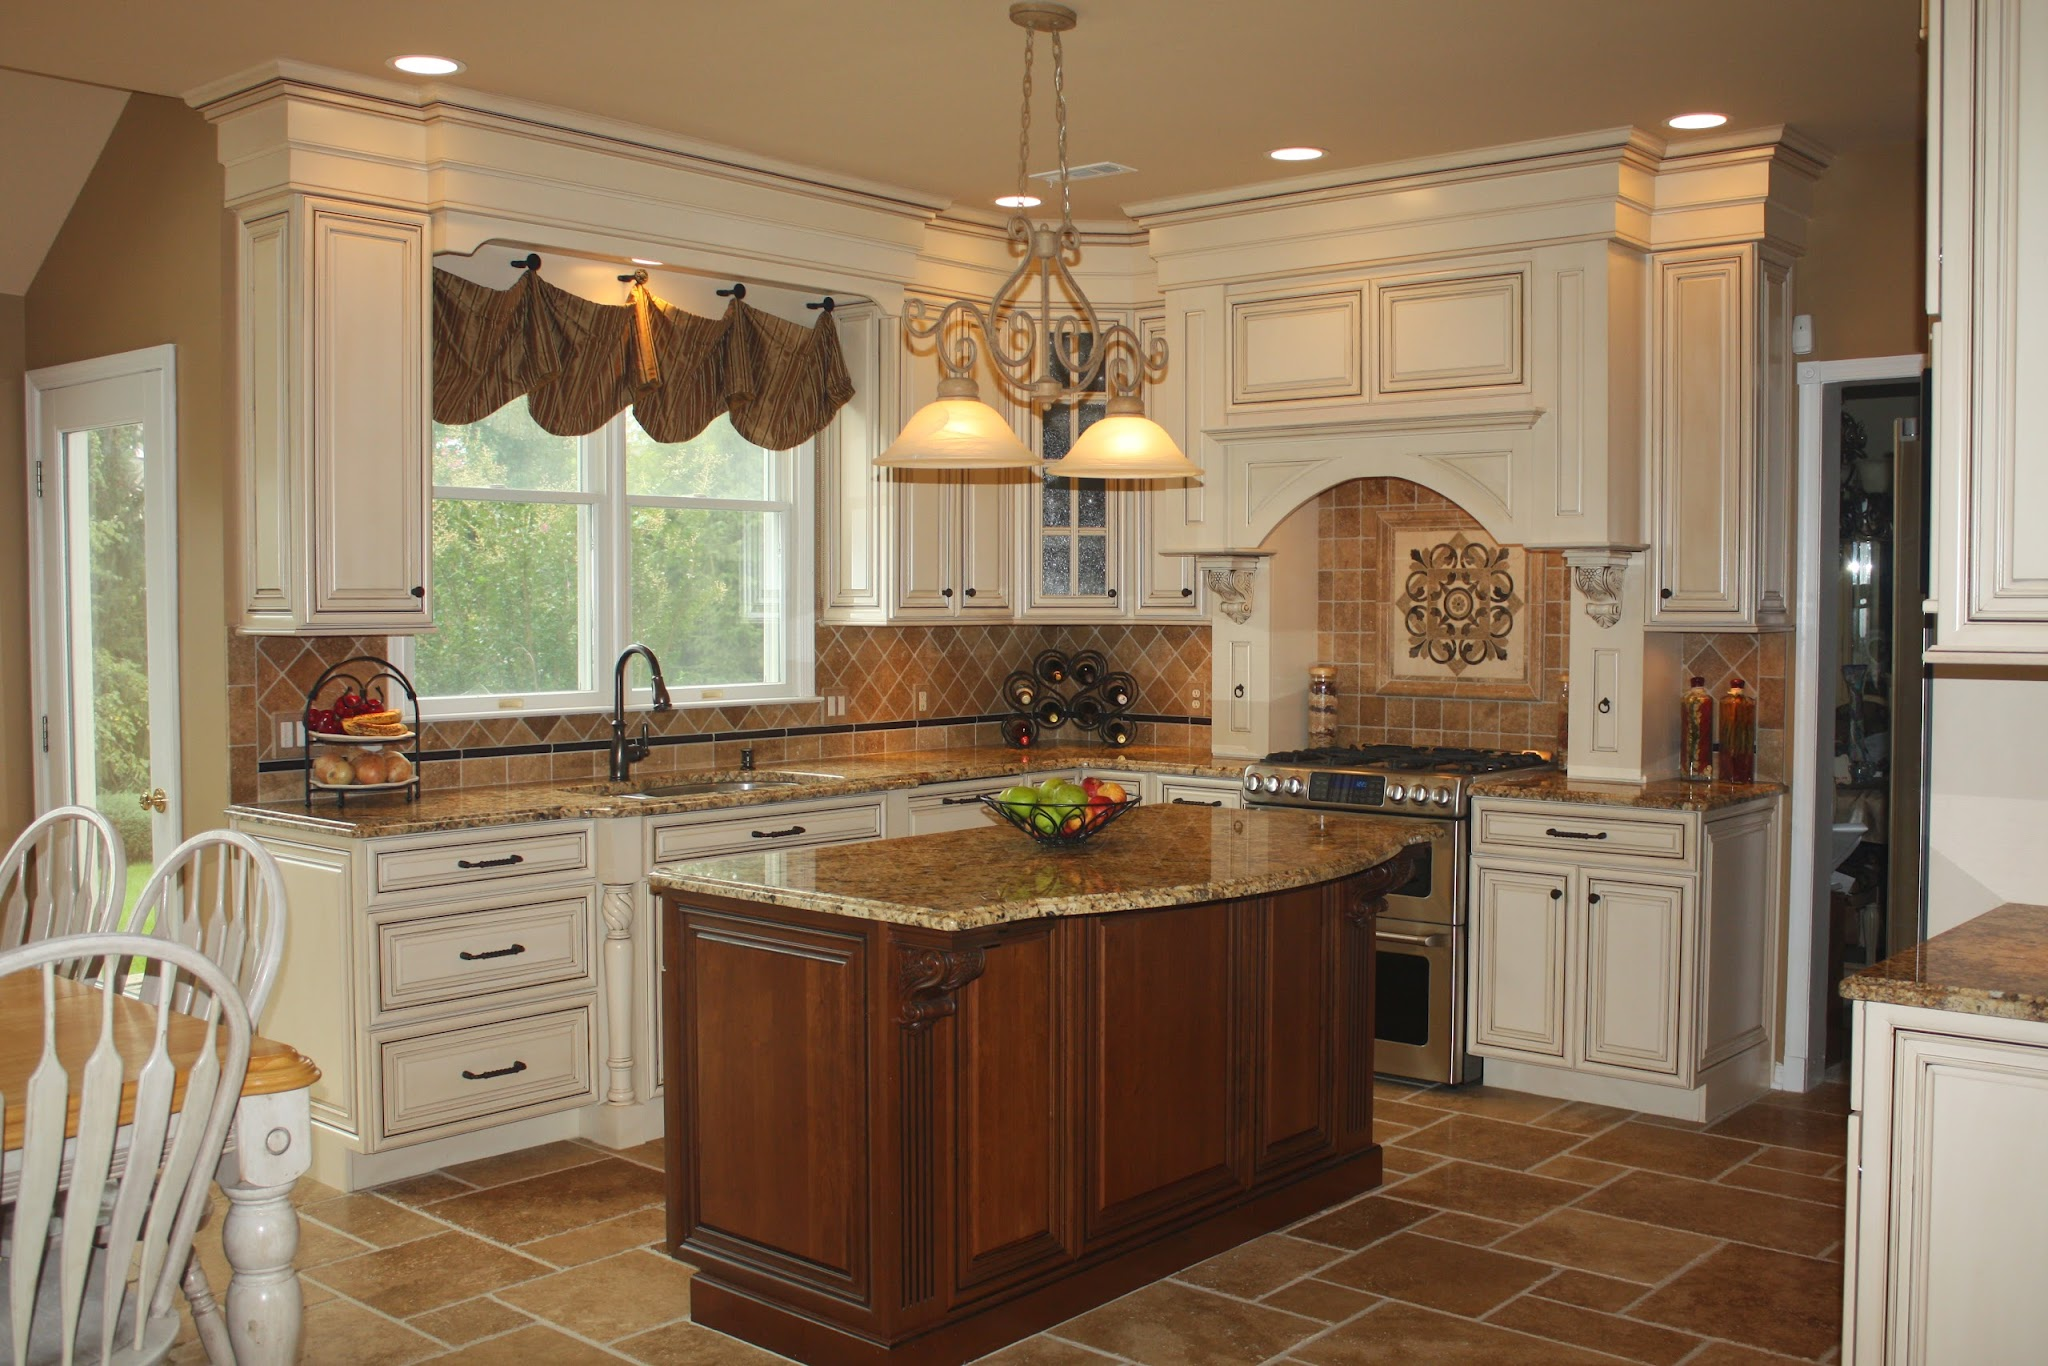 Houzz kitchen dreams house furniture for Kitchen remodel images